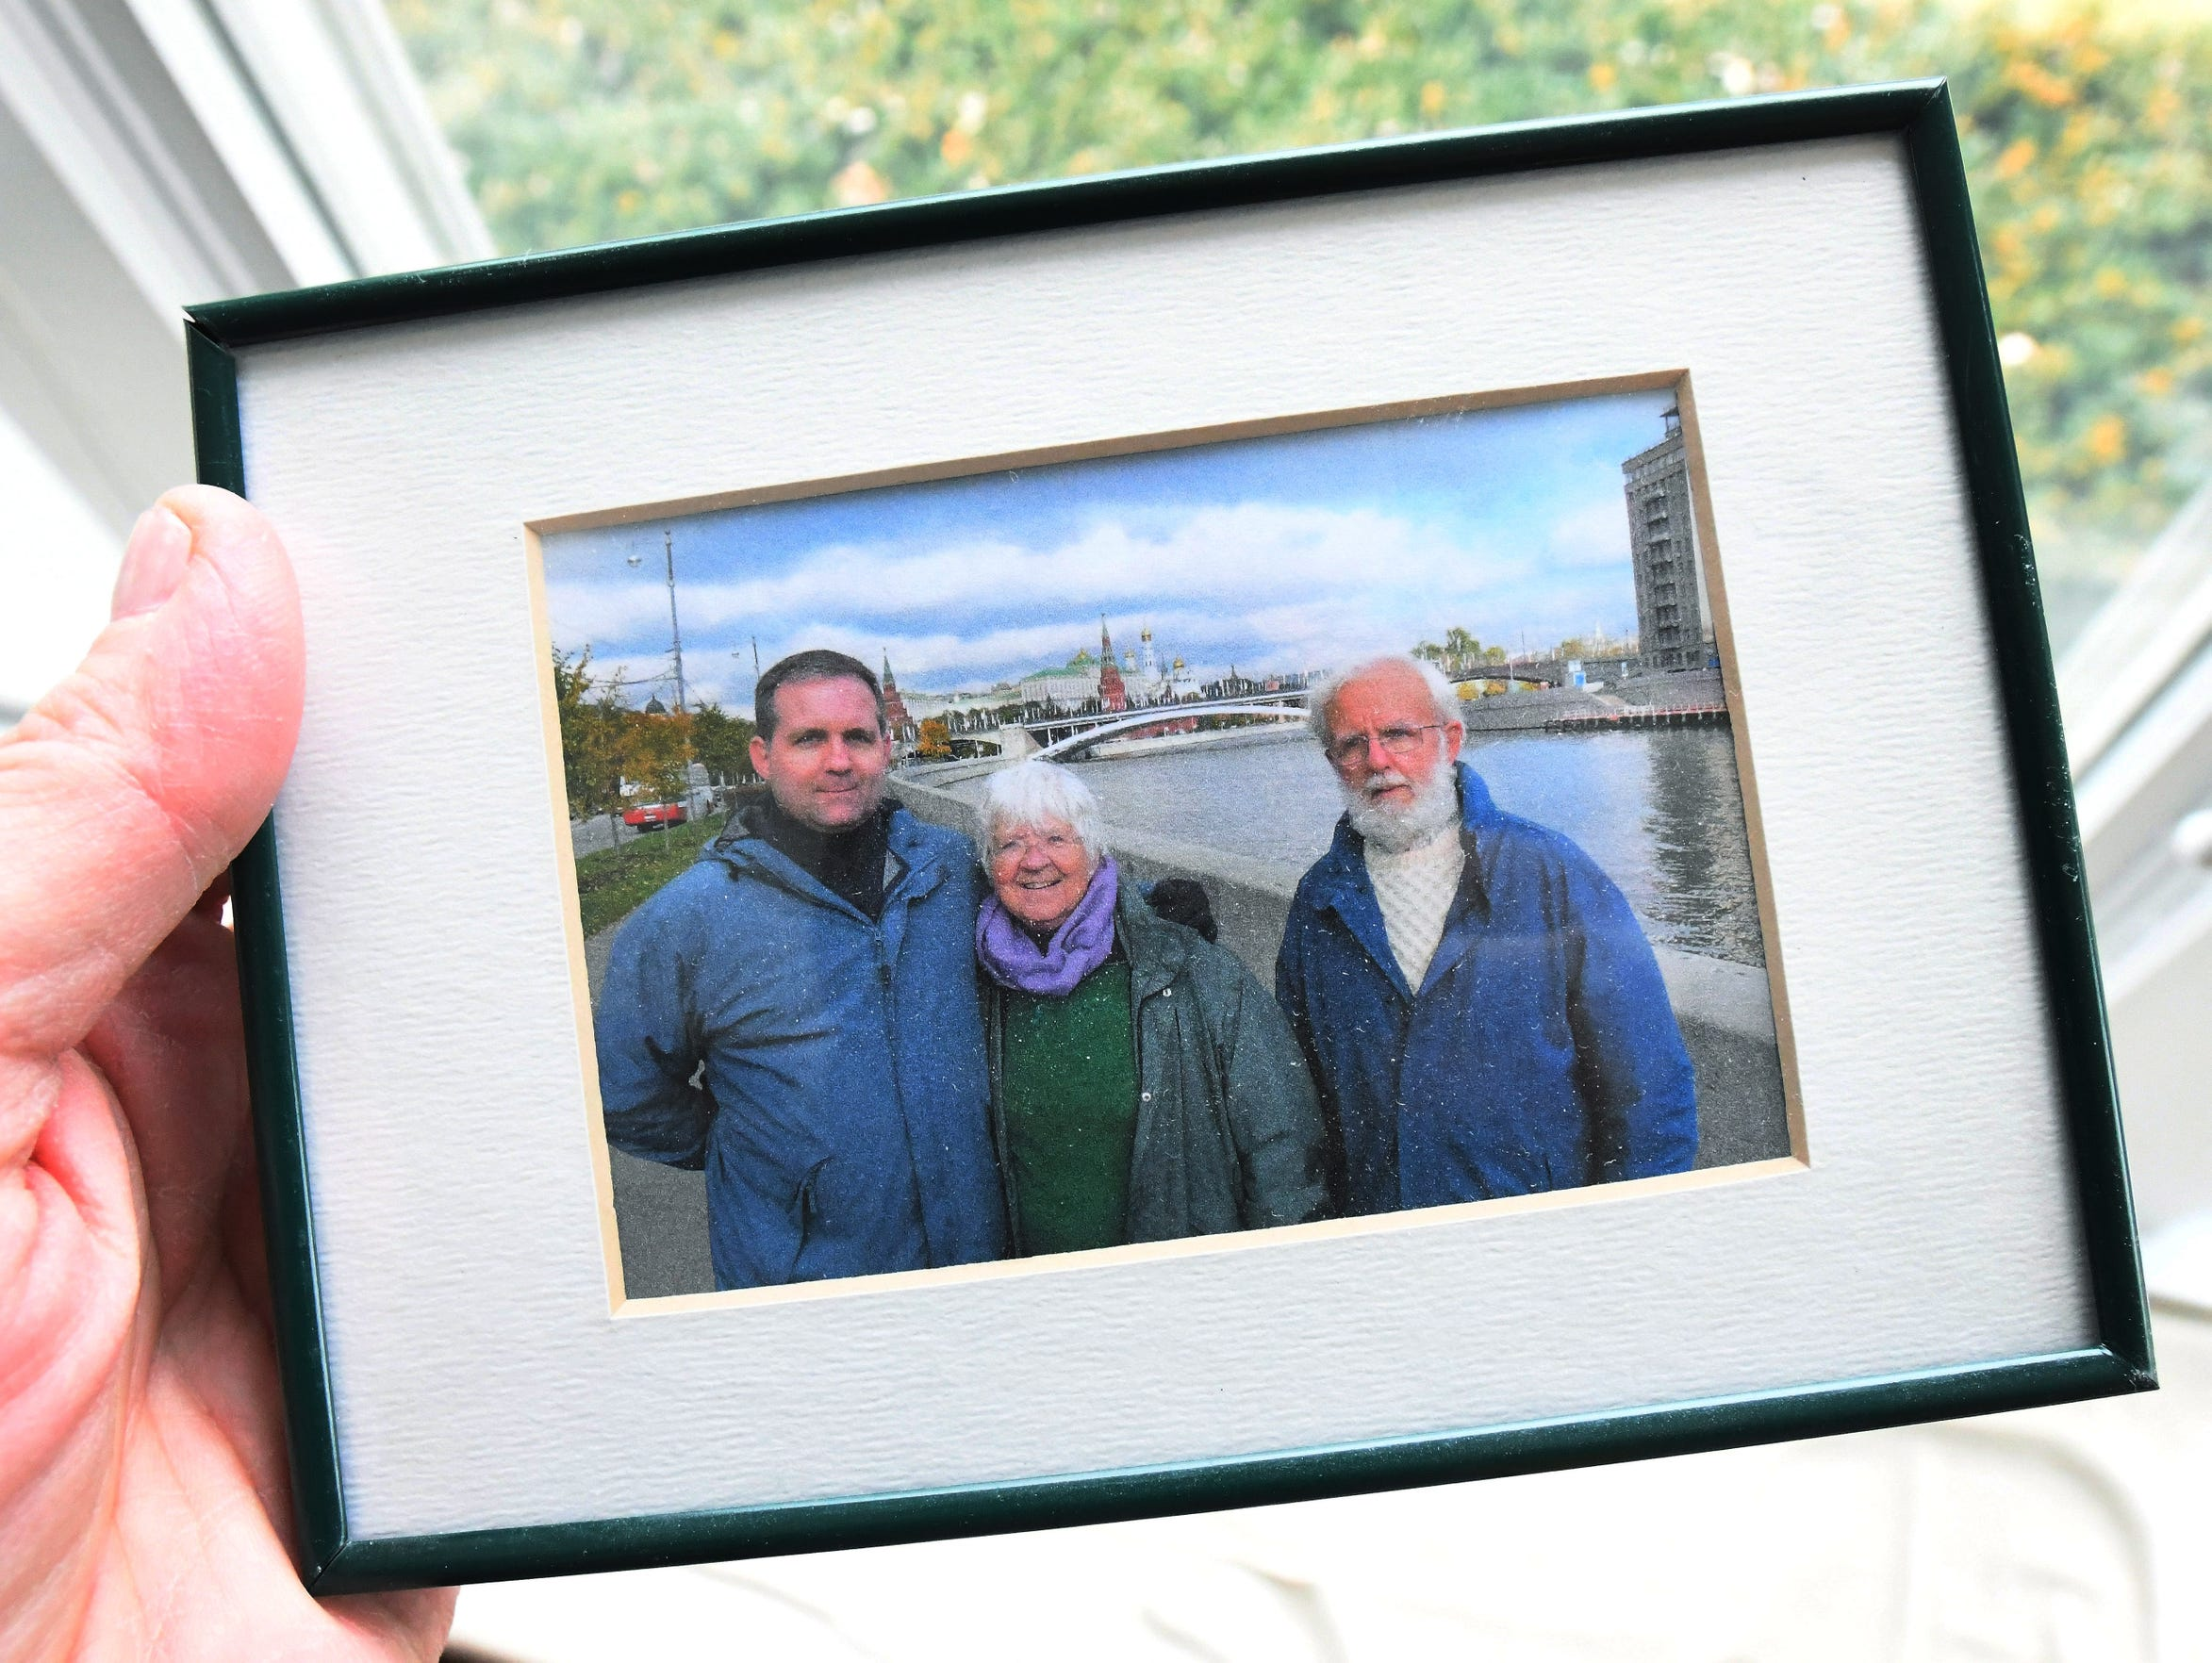 A family photo shows Paul Whelan and his mother, Rosemary, and father, Edward, during a trip to Russia in 2009.